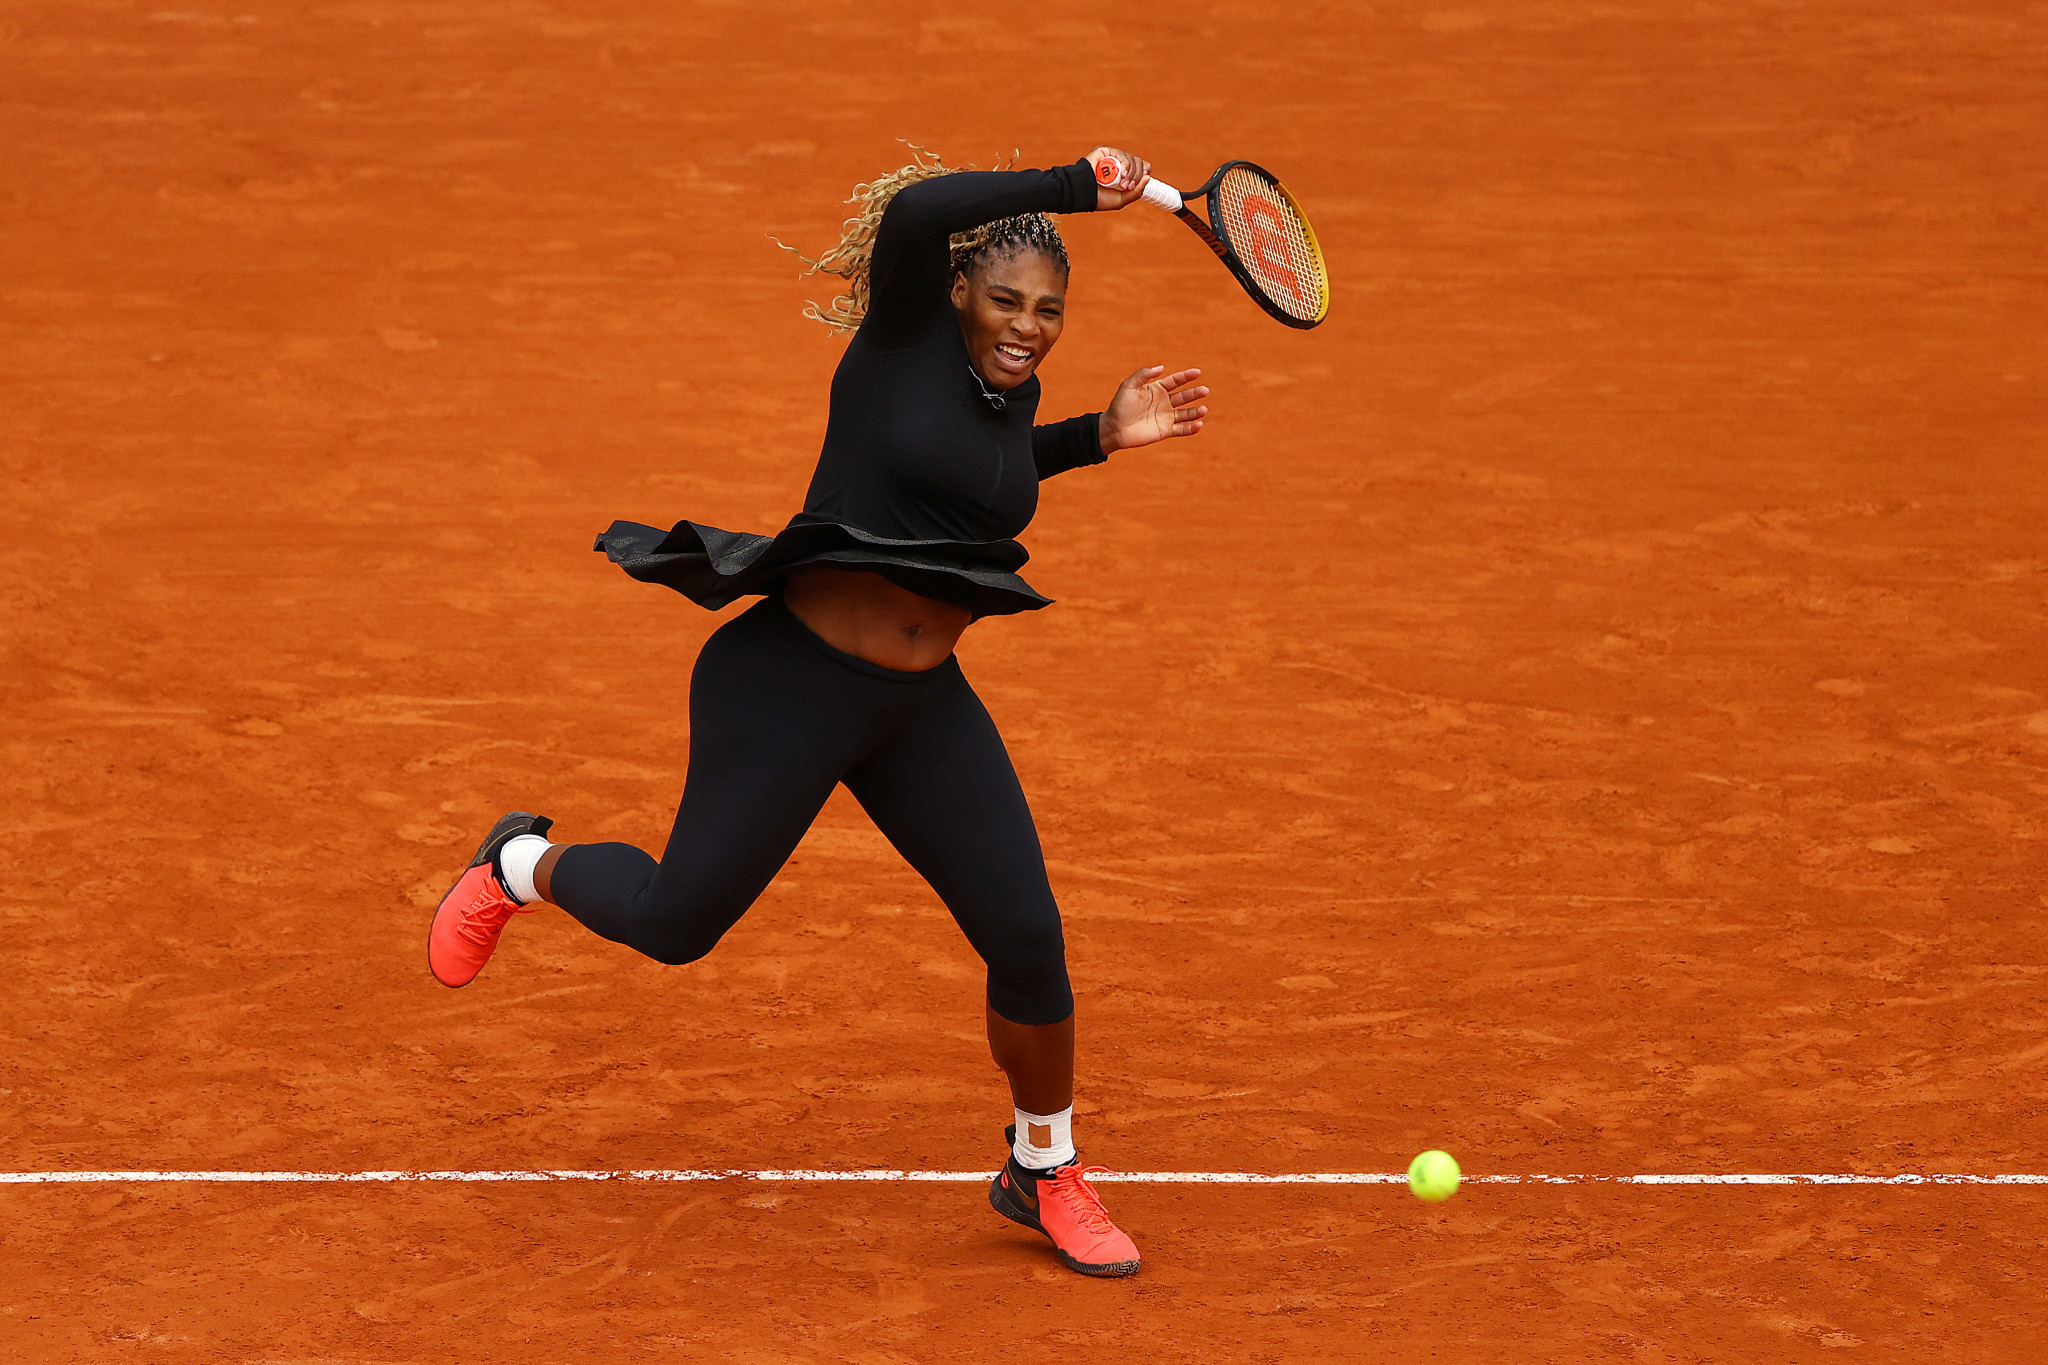 After a first set struggle, Serena Williams cruised to victory in her first round match at Roland Garros ©Getty Images